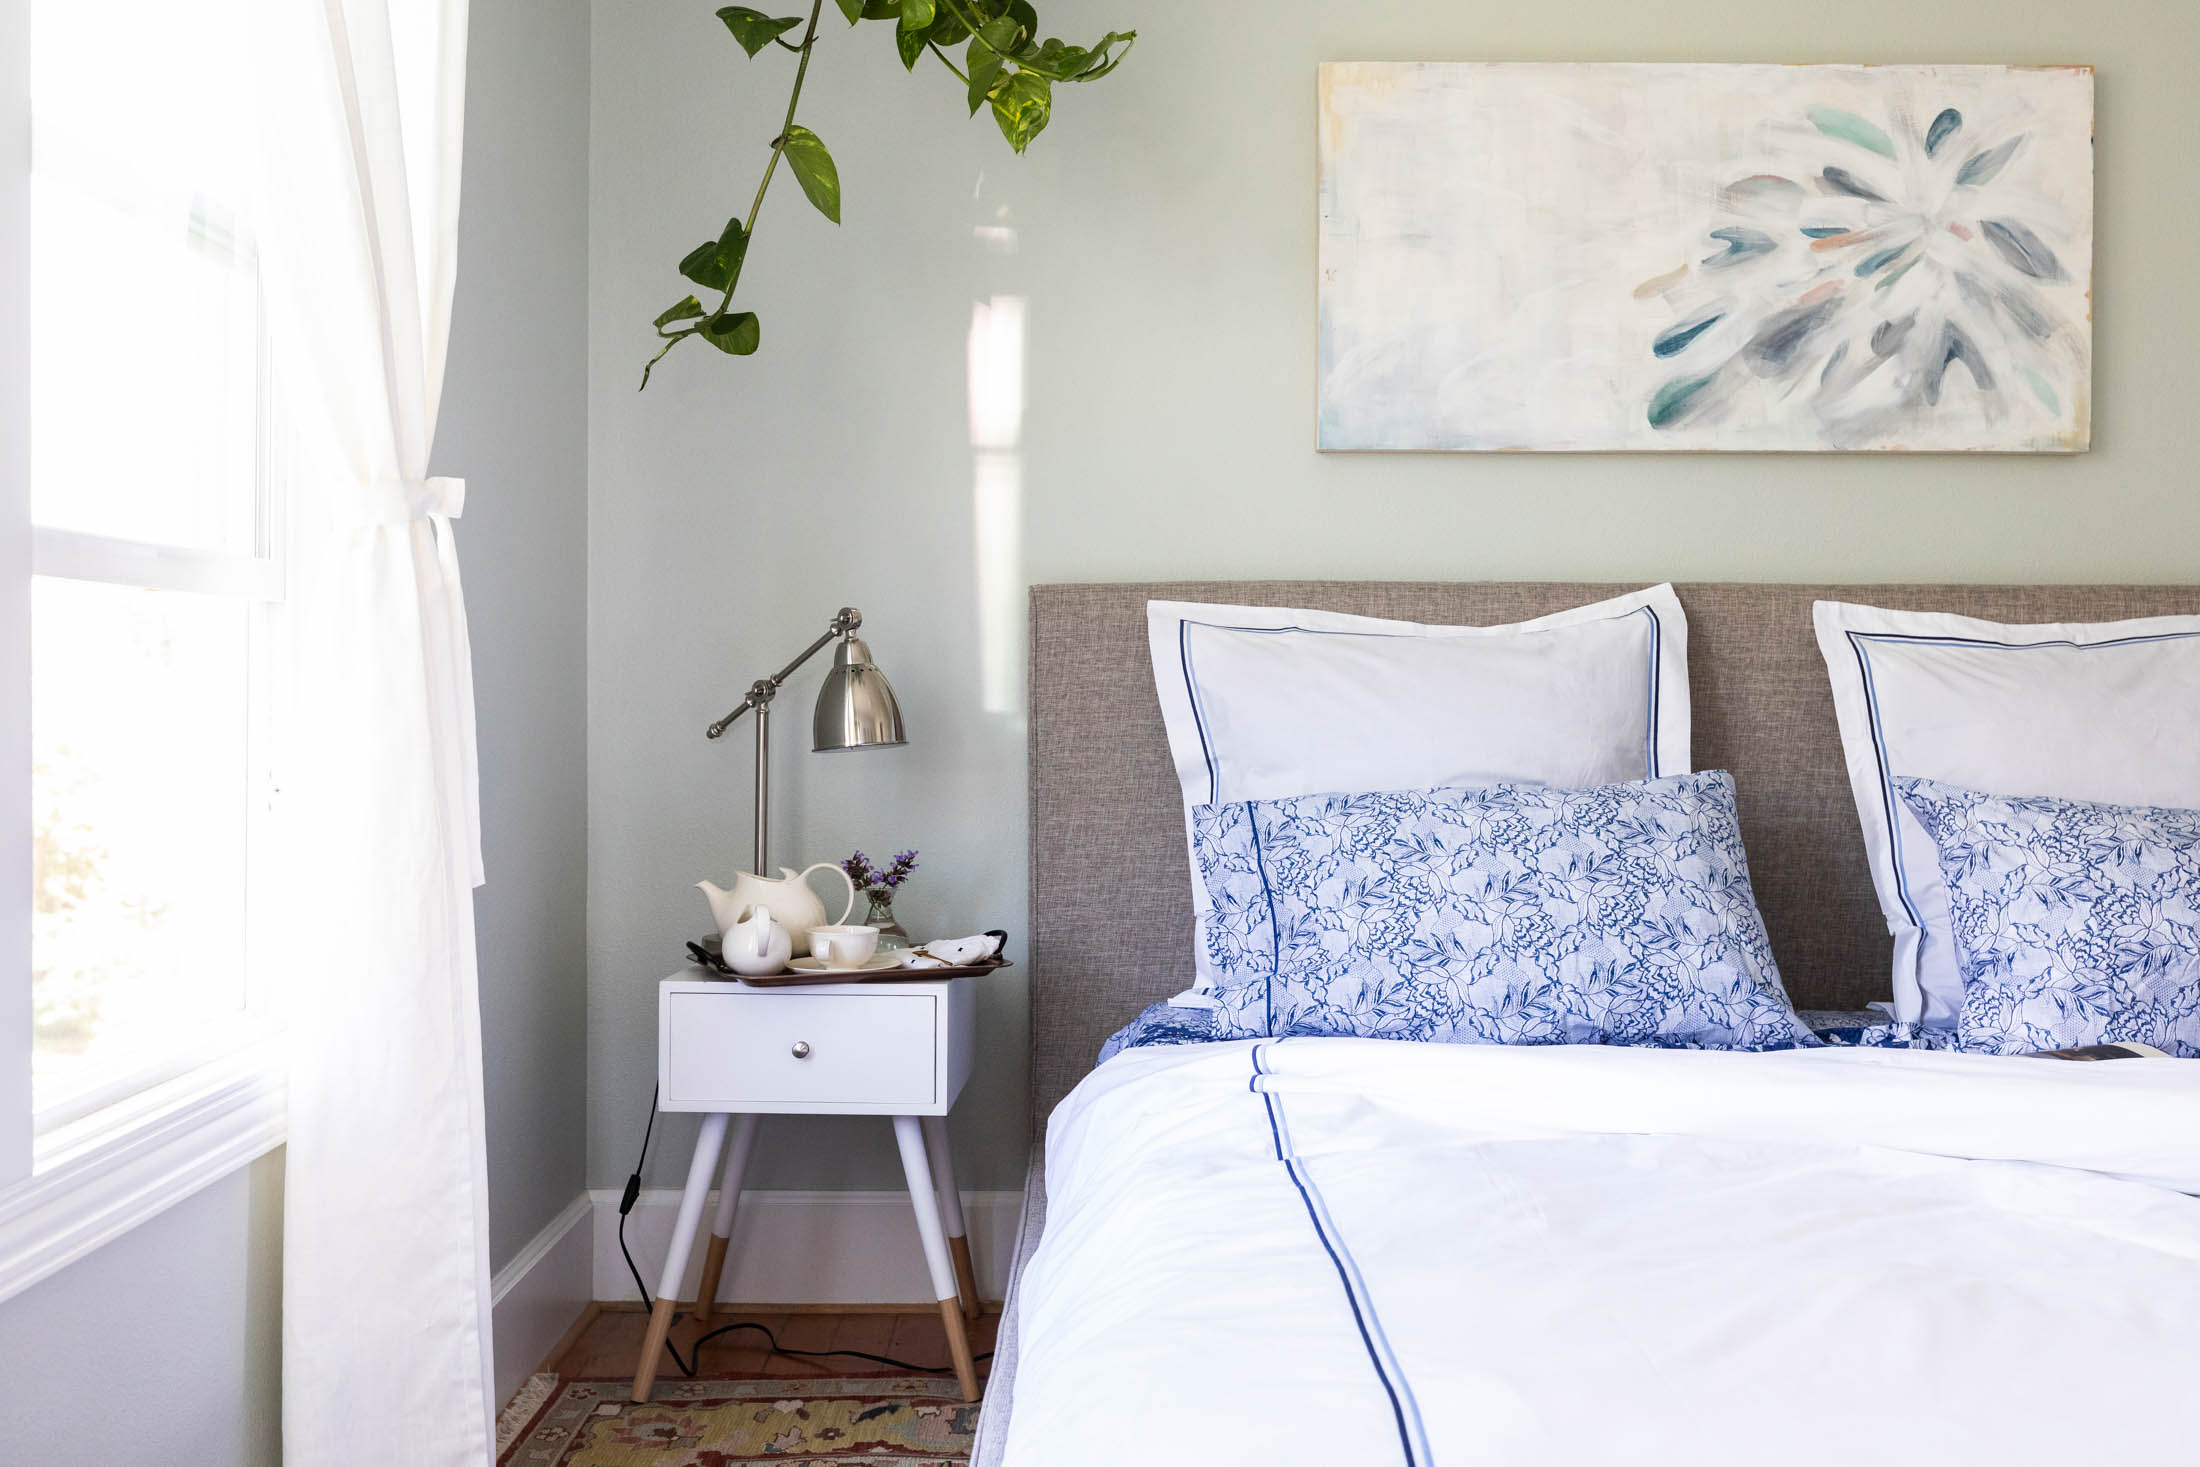 Mamas, self-care is probably more attainable if we start at home. A tranquil retreat among lux bedding 1 way to get there. See what we're loving right here.